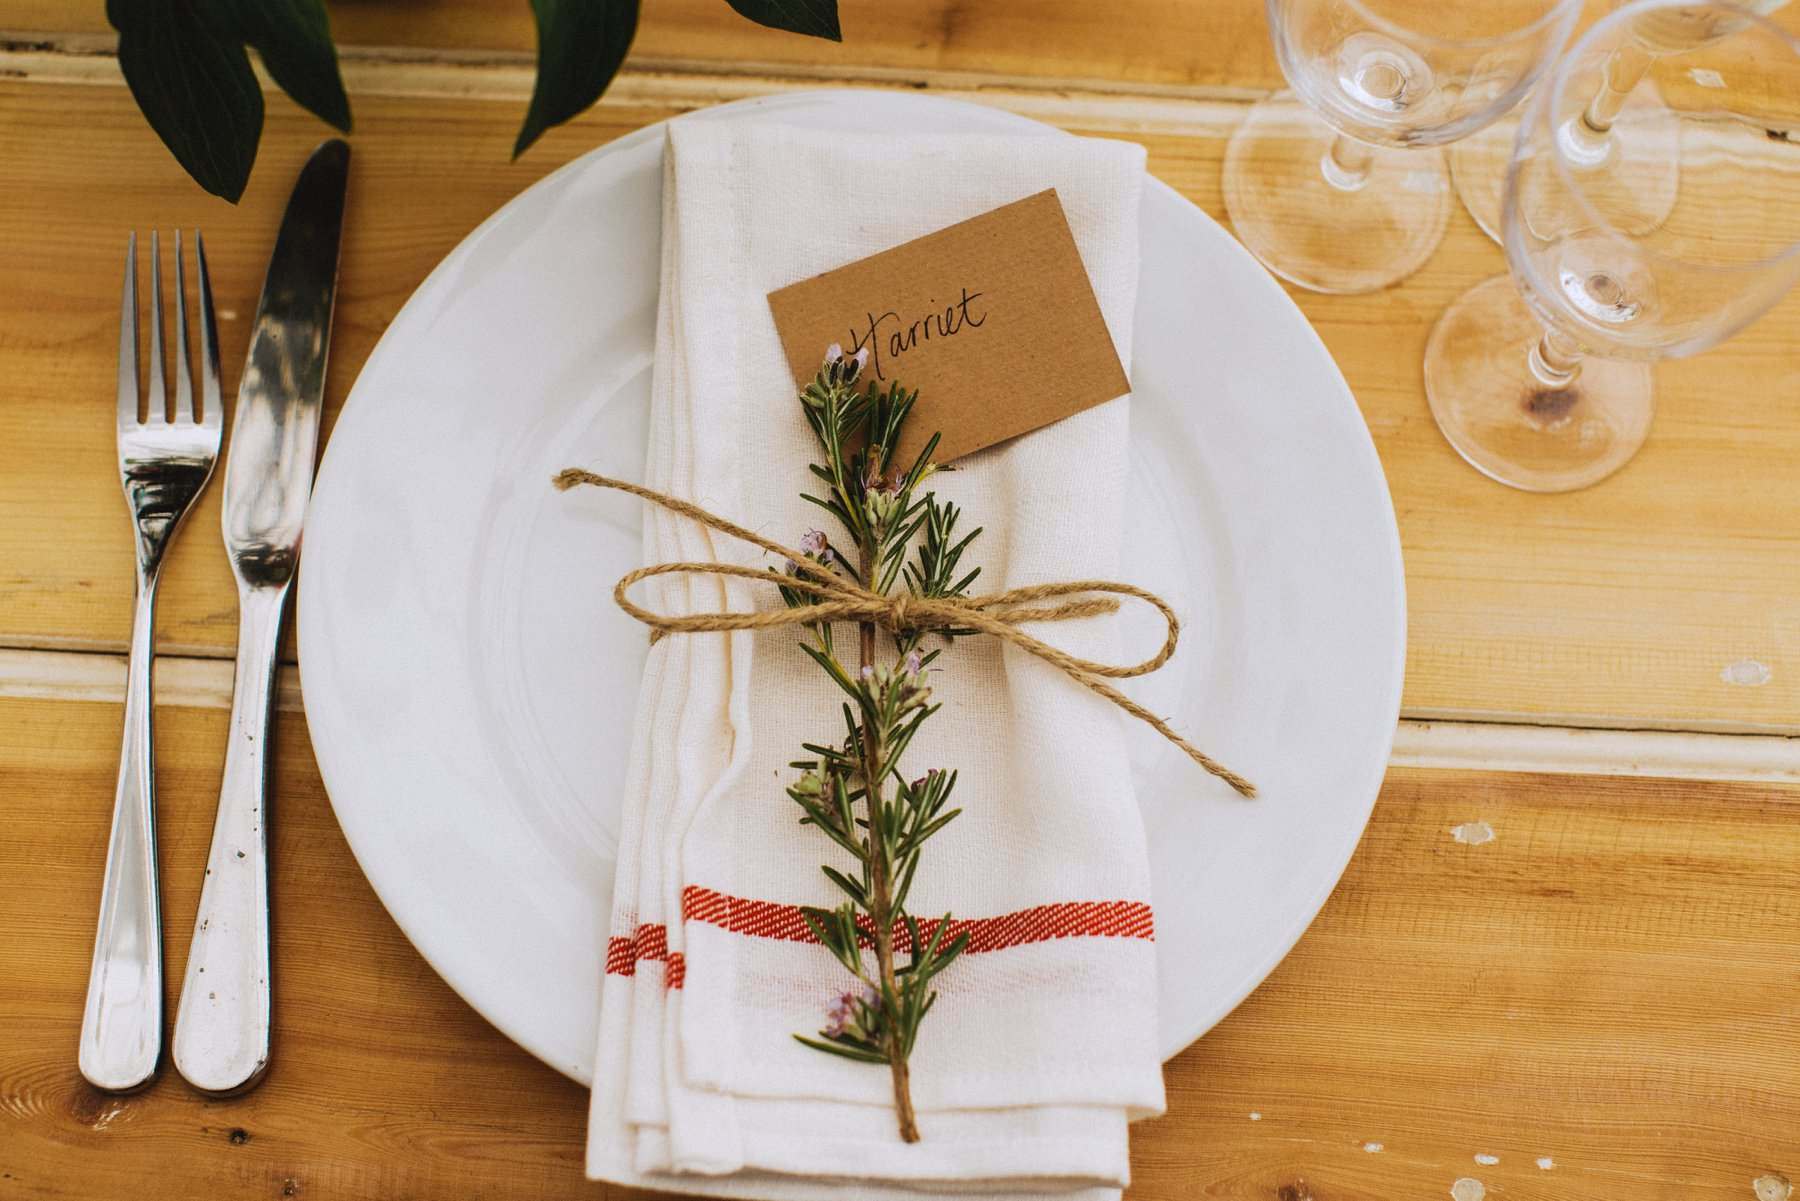 rosemary decor for place names at outdoor wedding in bath somerset